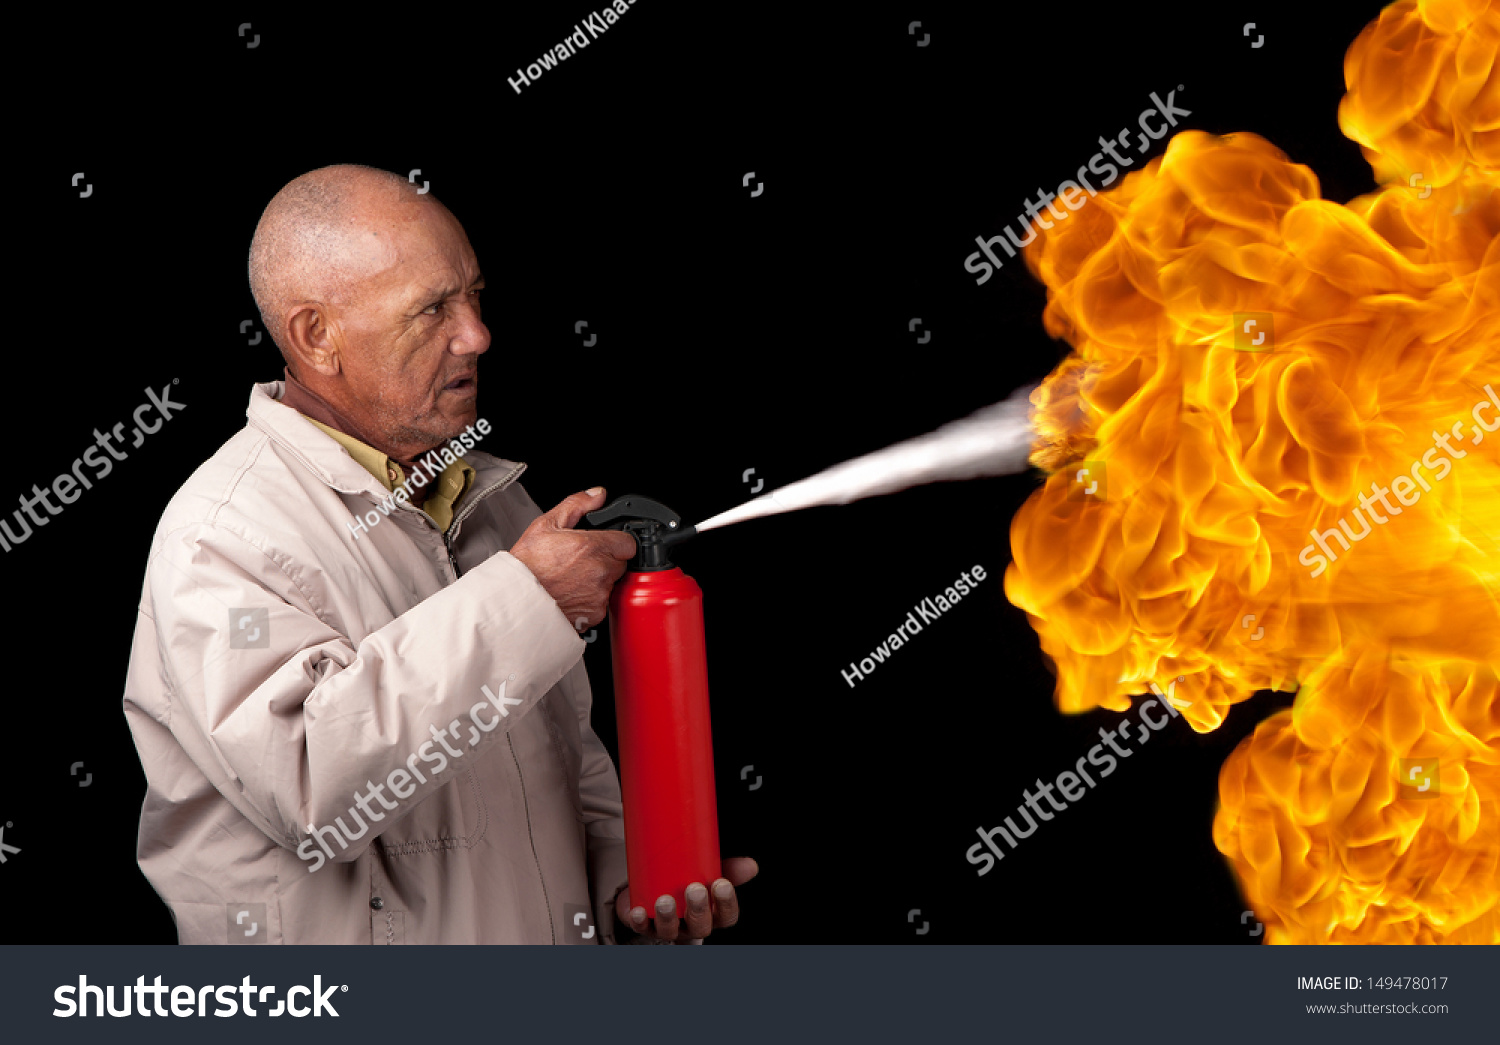 Old Man Attempts Extinguish Flames Giant Stock Photo ...